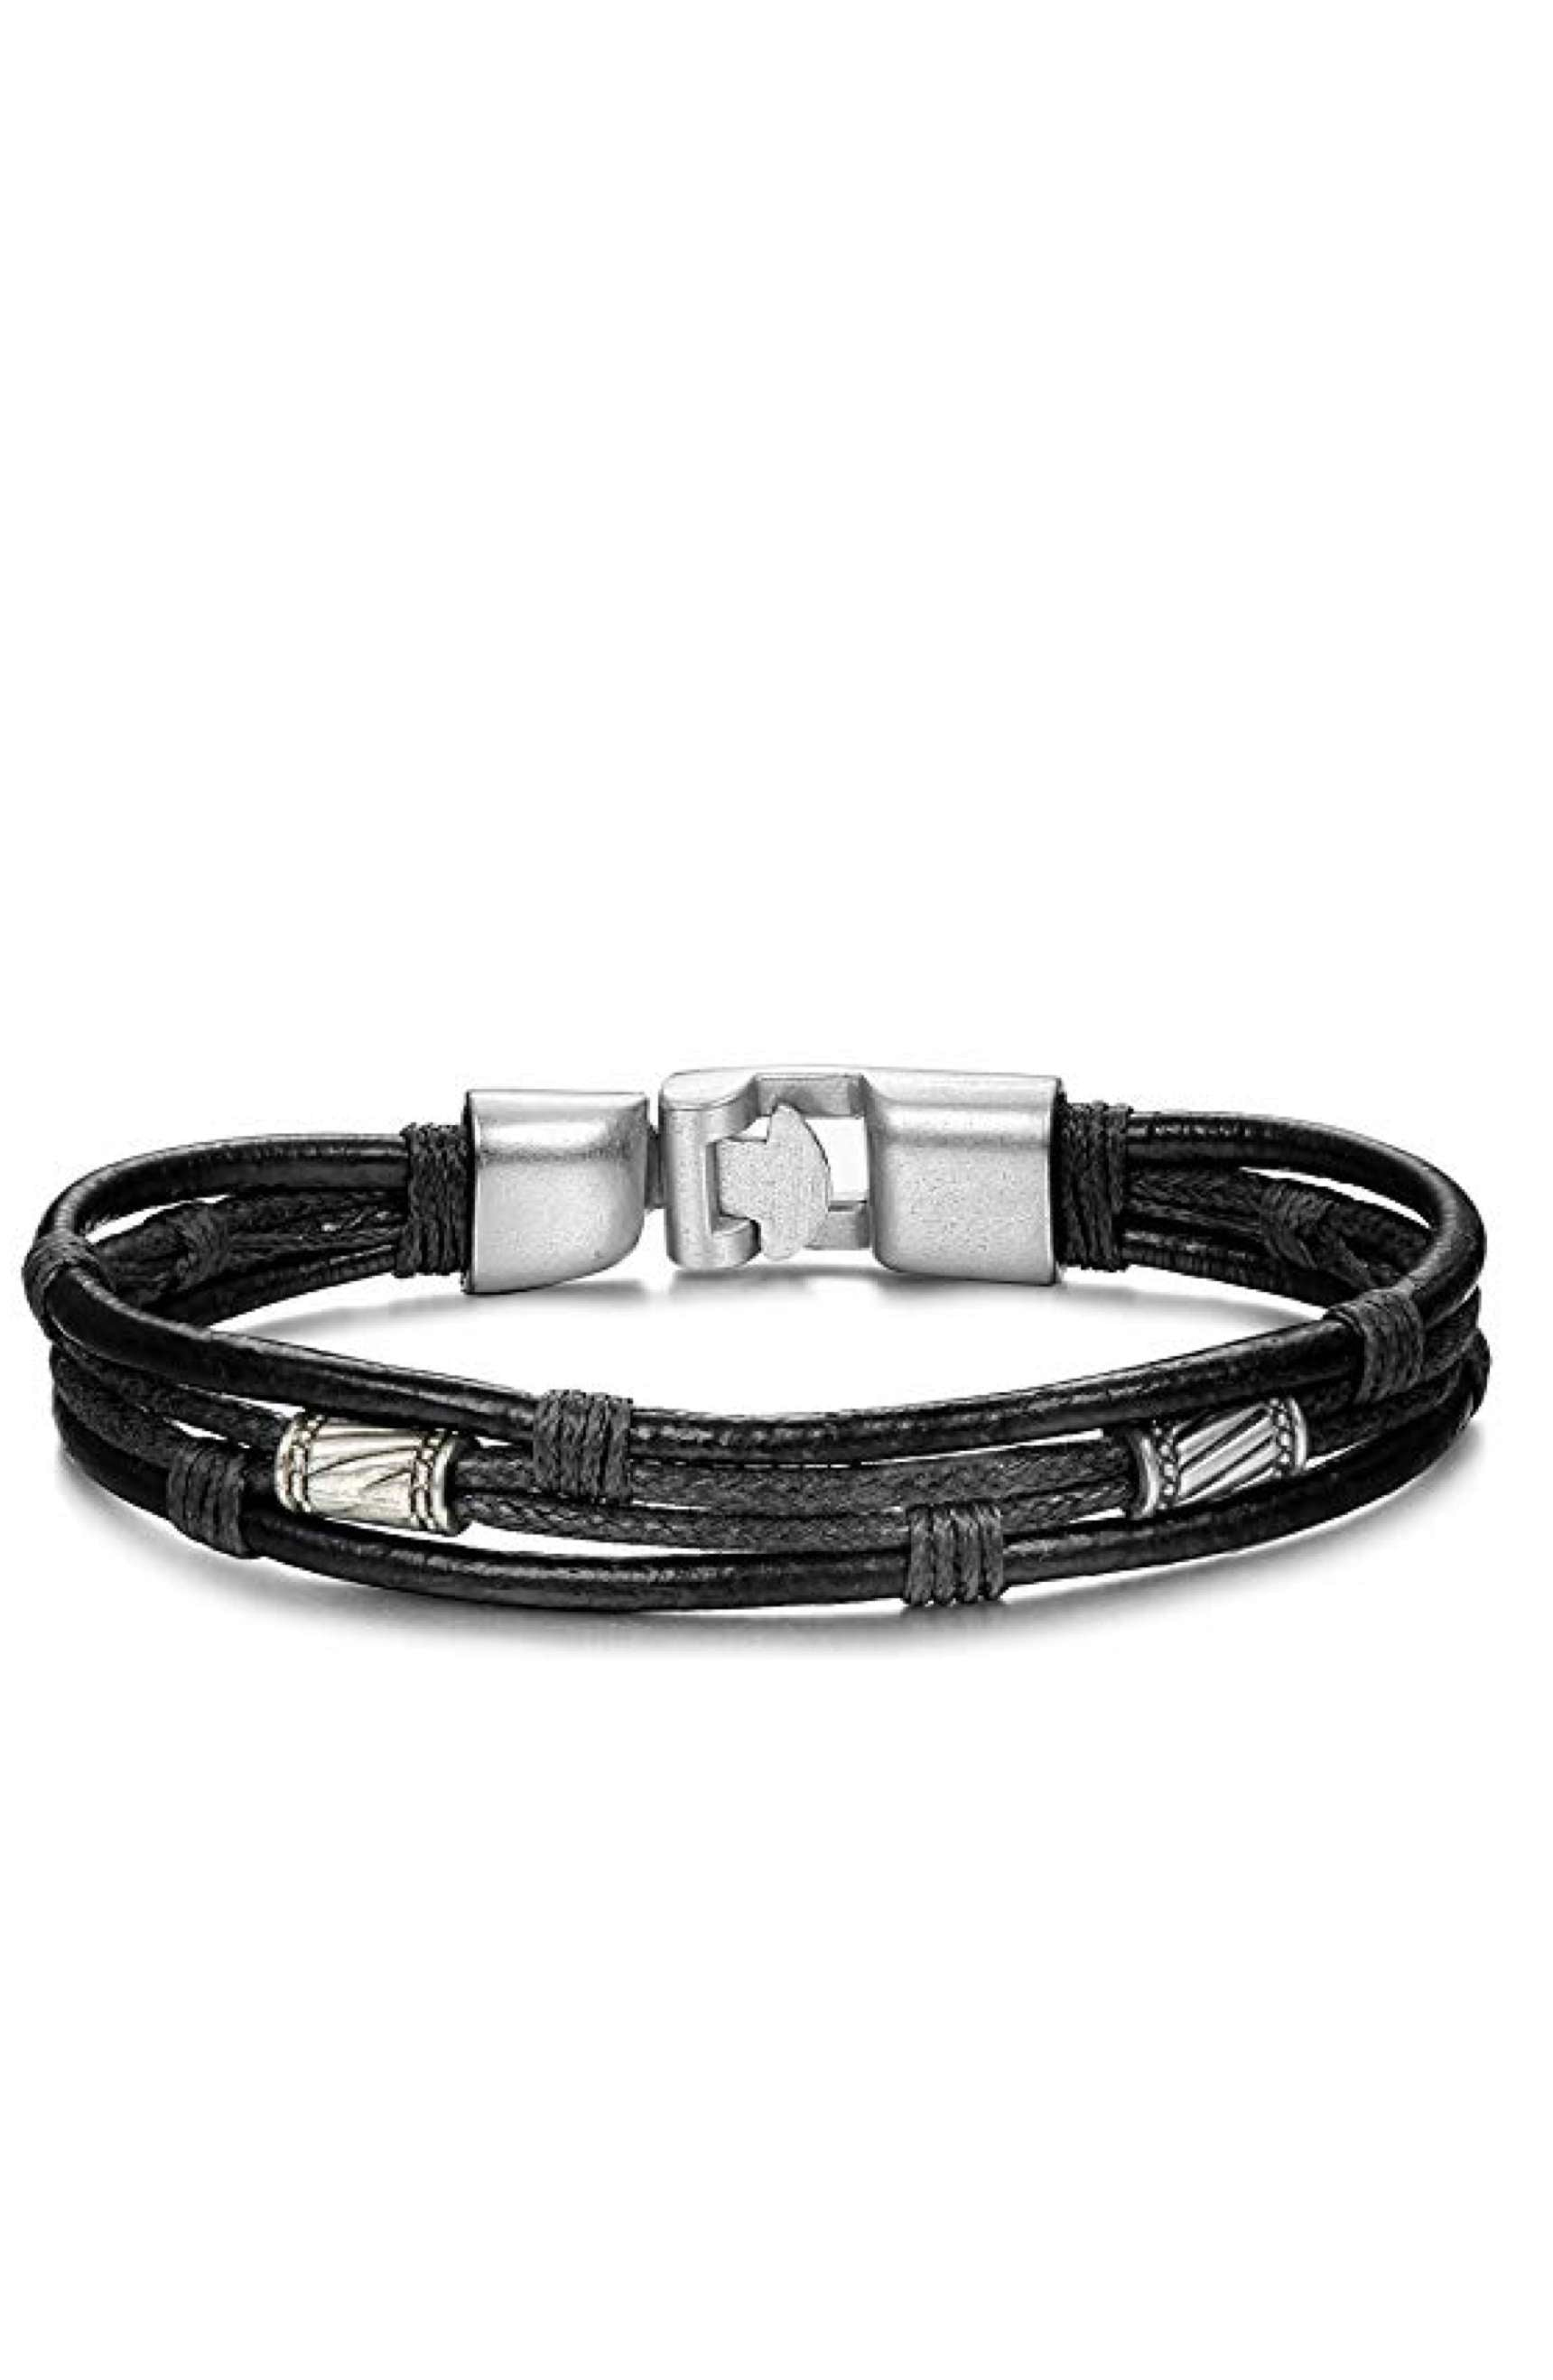 Silver & Black Leather Bracelet